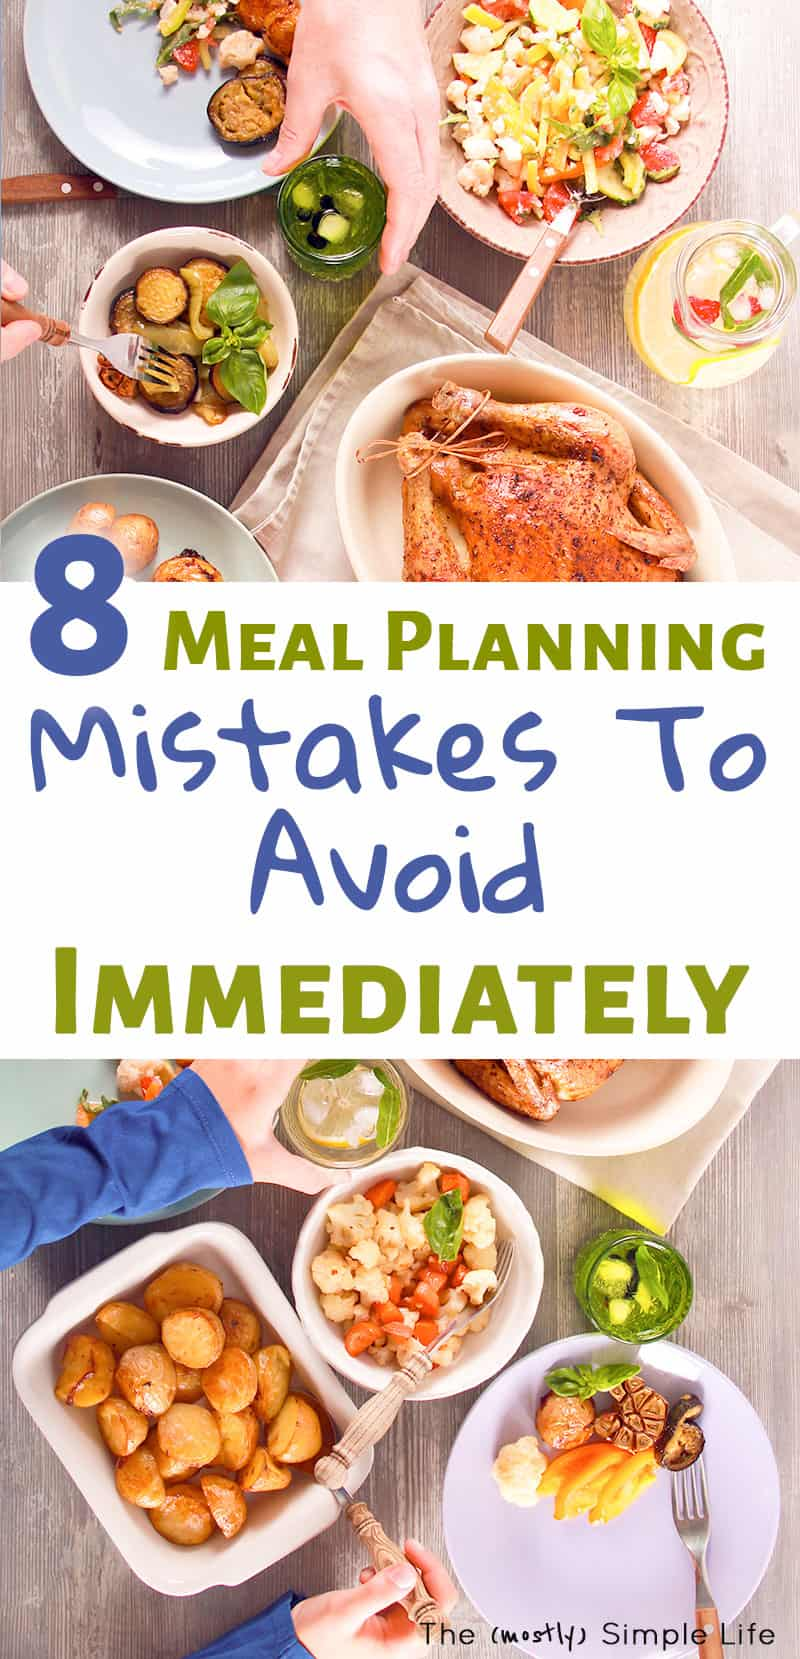 Amazing meal planning tips for beginners! Whether you want to lose weight or you\'re on a budget, this is so helpful. Meal planning helps us with saving money and eating healthy. Love that these hacks are great for busy families. #mealplanning #simple #tips #organization #mistakes #savemoney #loseweight #eathealthy #healthy #mealplan #aldi